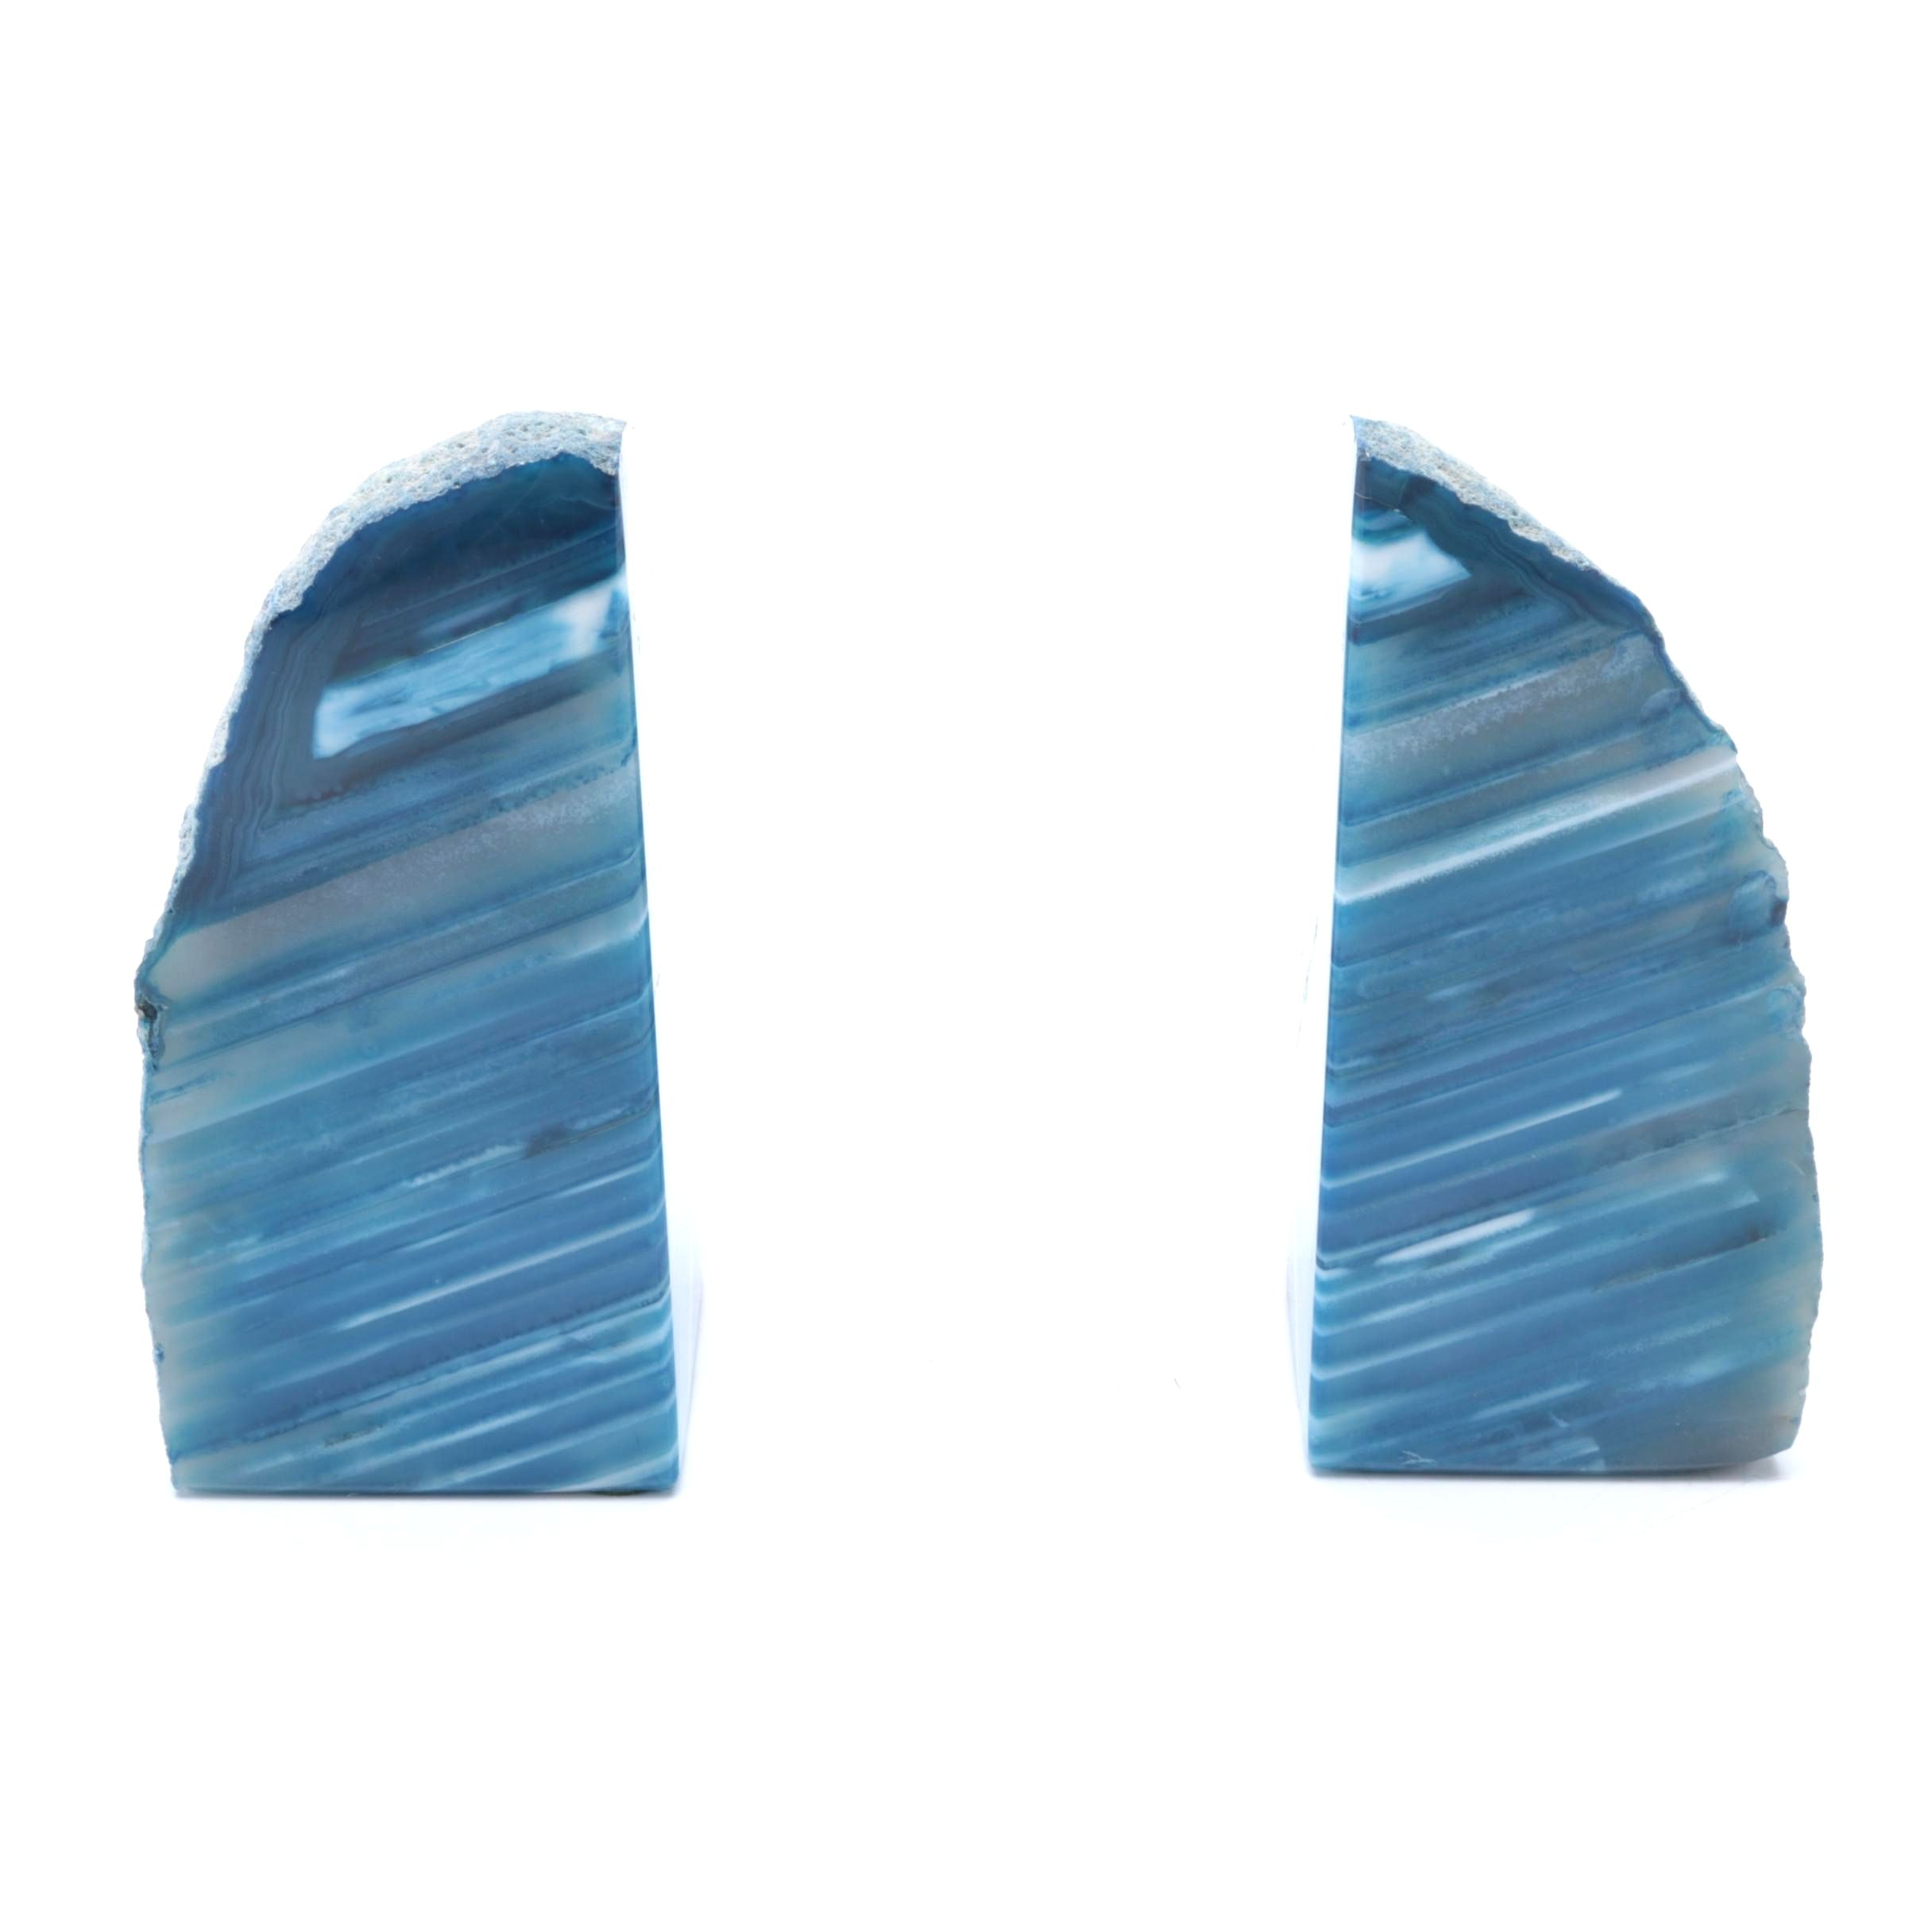 Dyed Blue Agate Bookends